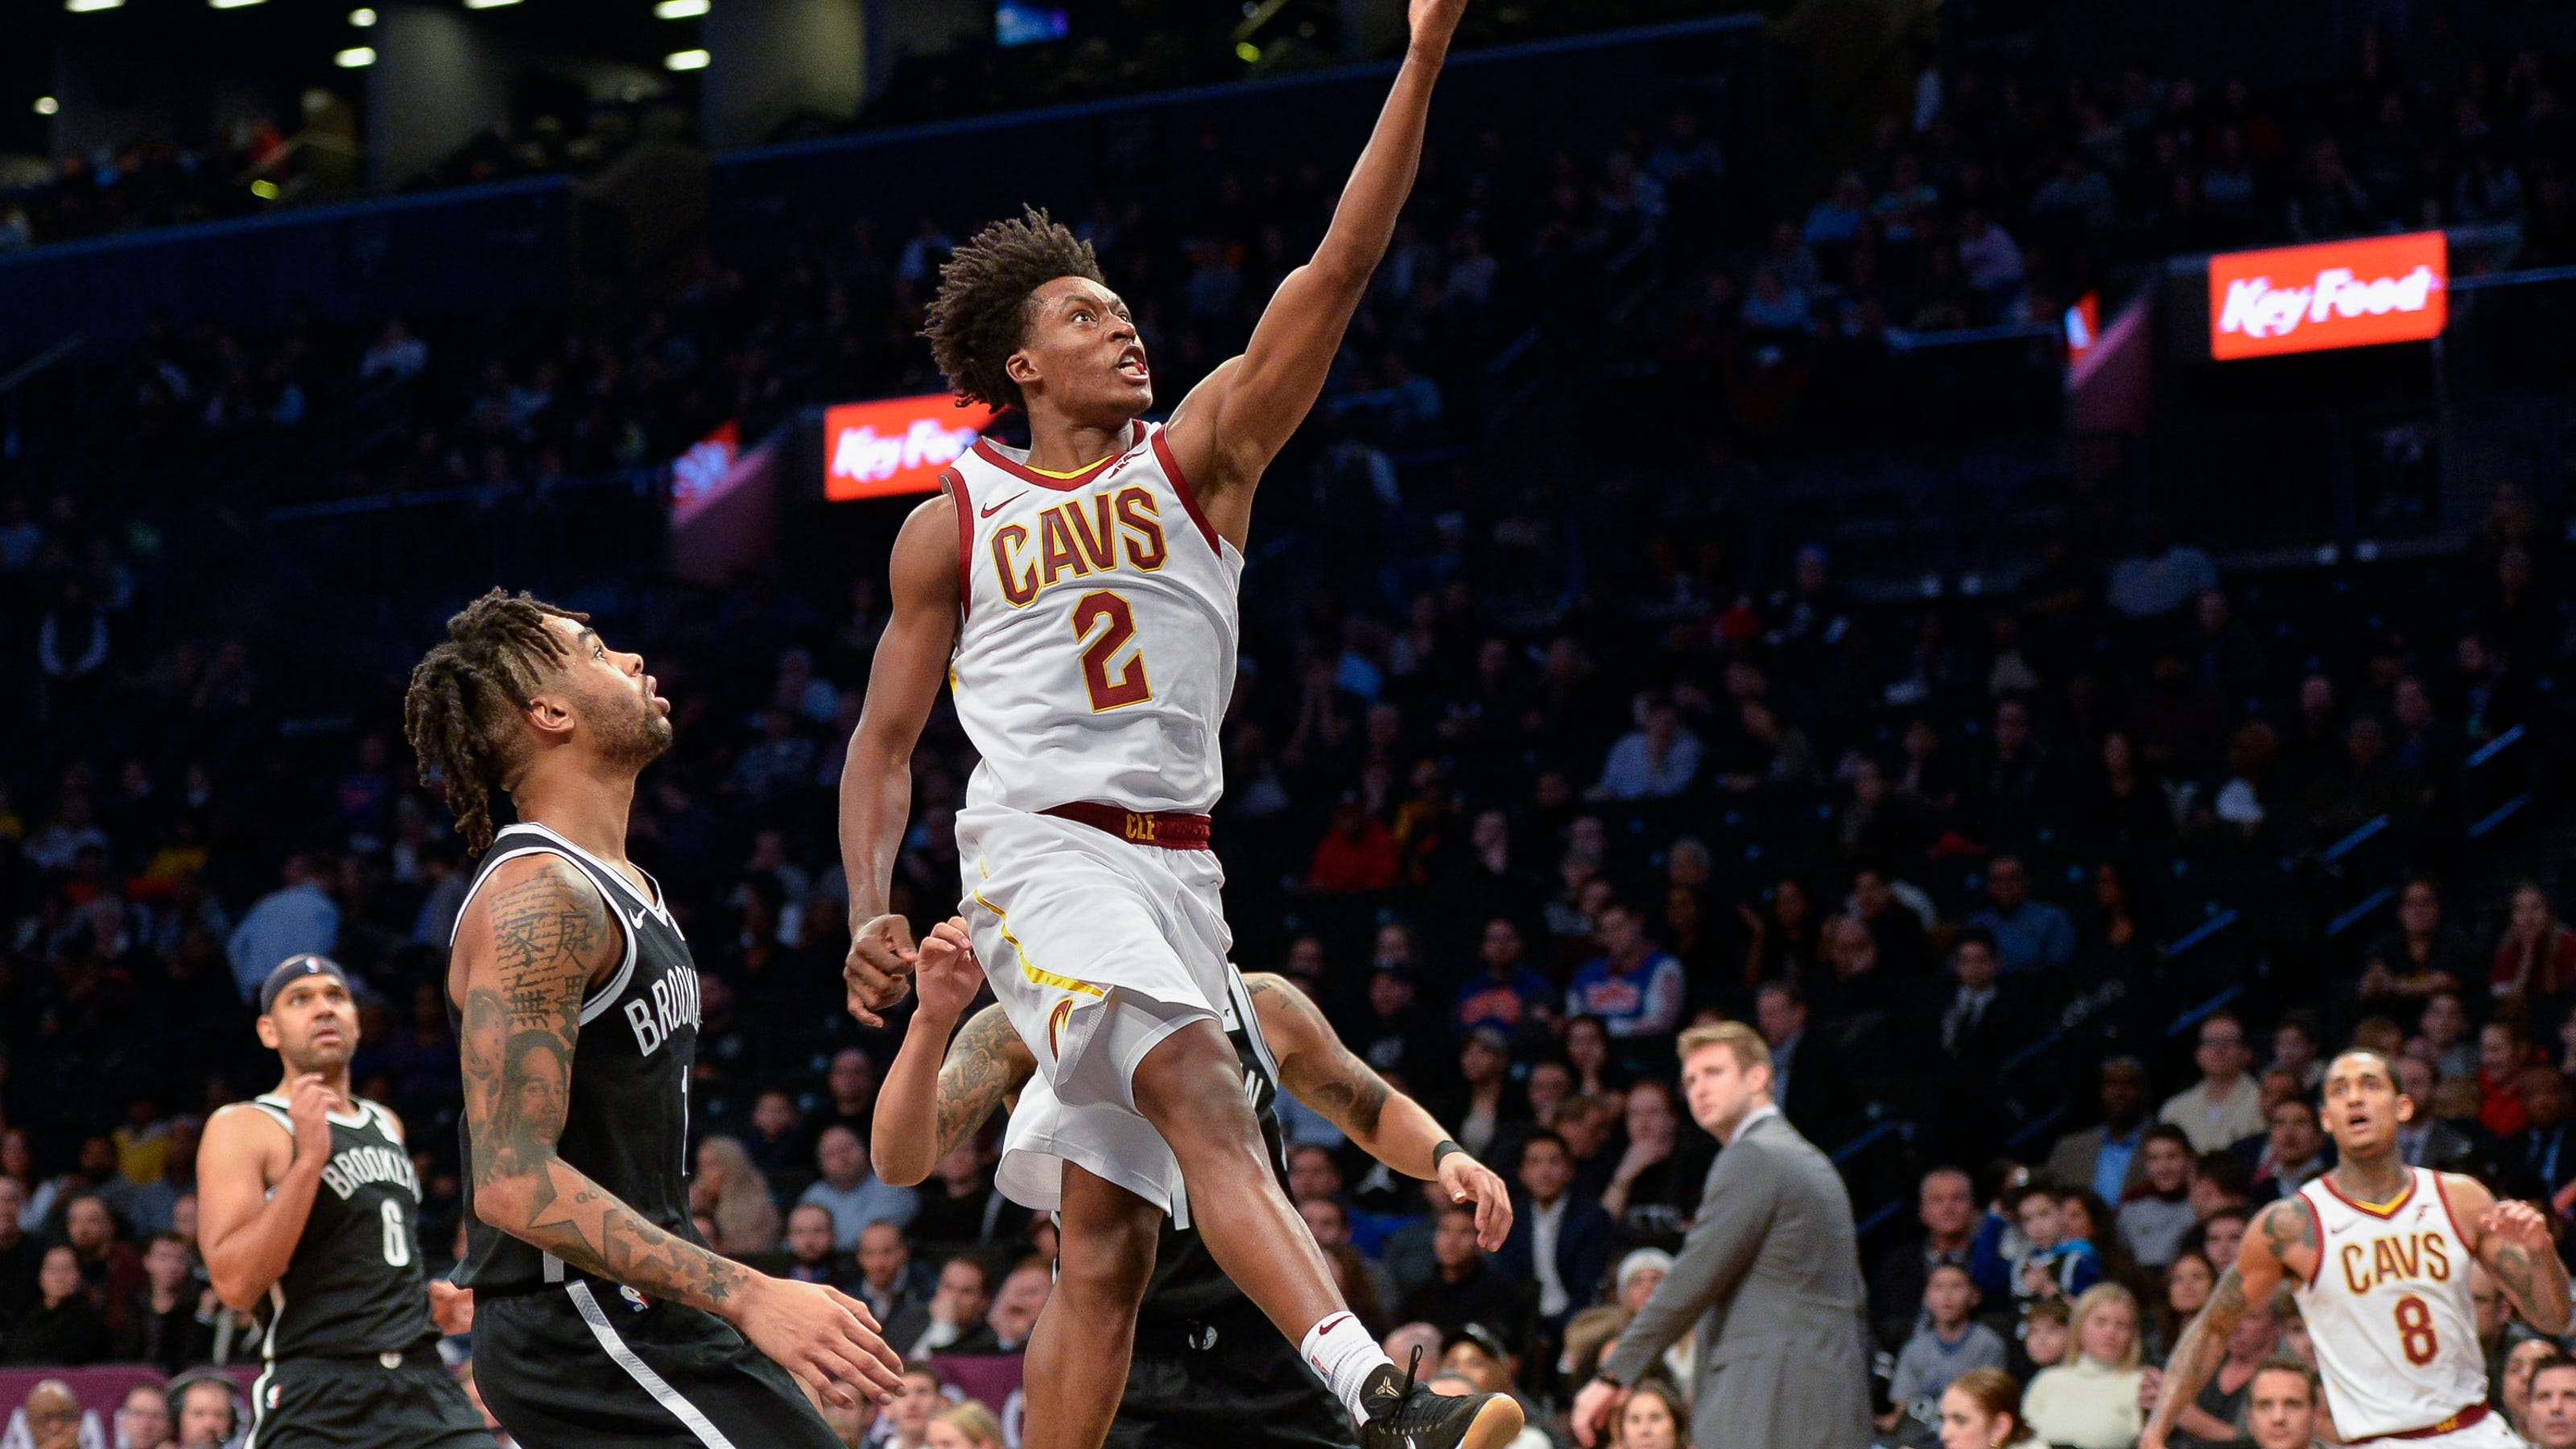 New York Knicks vs. Cleveland Cavaliers: 5 things to know